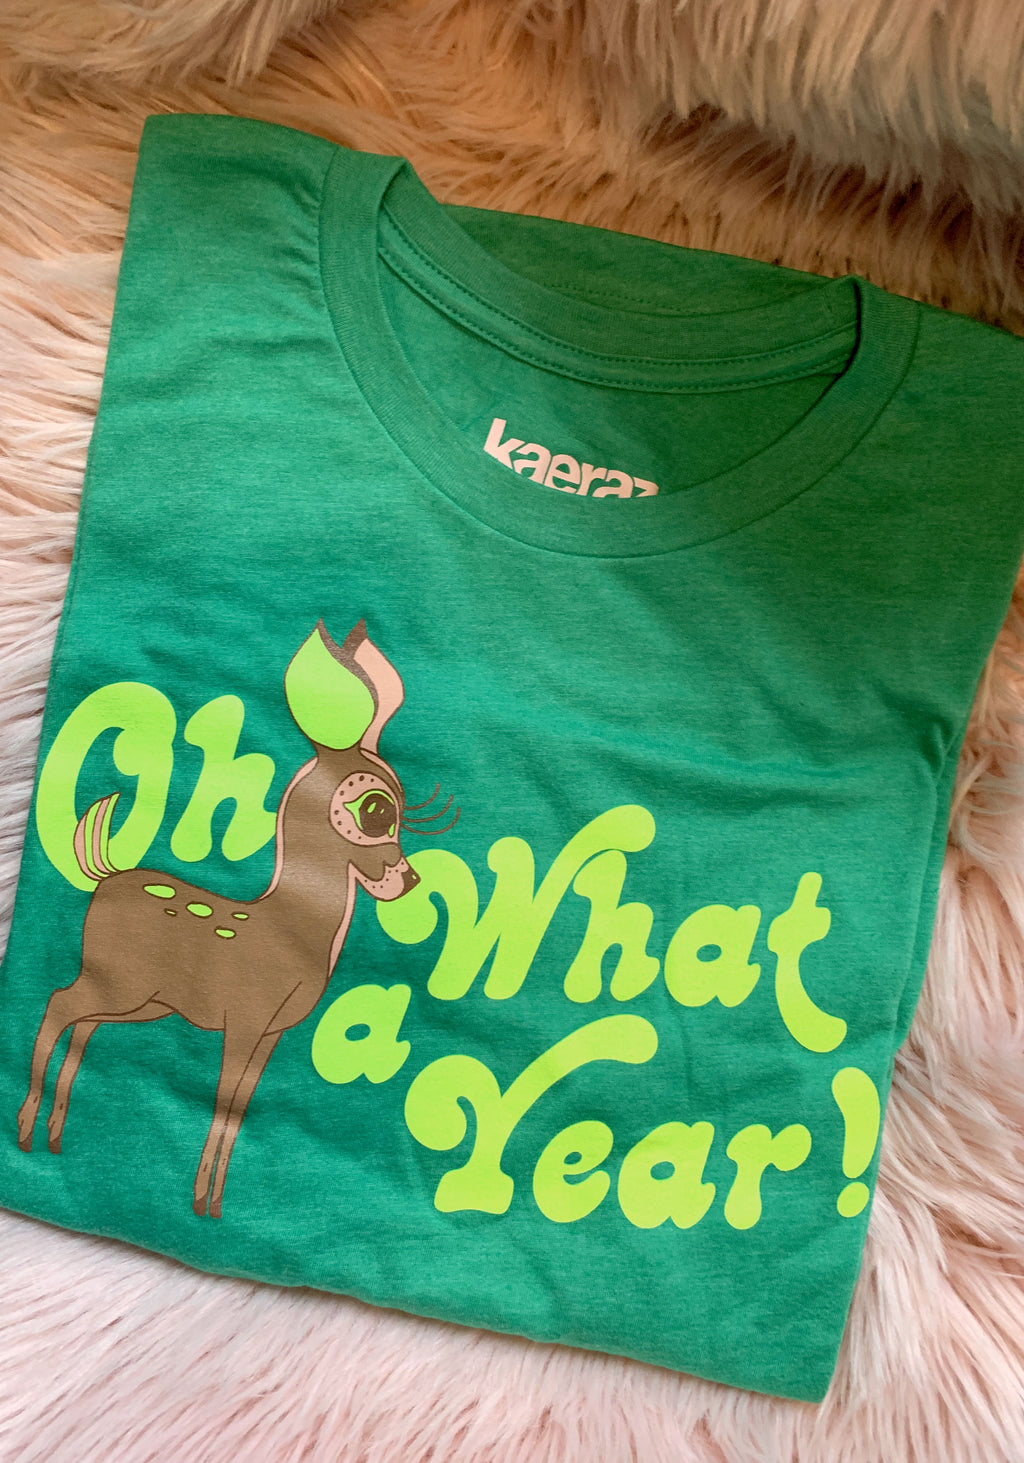 Oh Deer What A Year Tee / womens graphic tees / vintage style retro 60s 70s t shirt / dear woodland fall / neon souvenir shirt